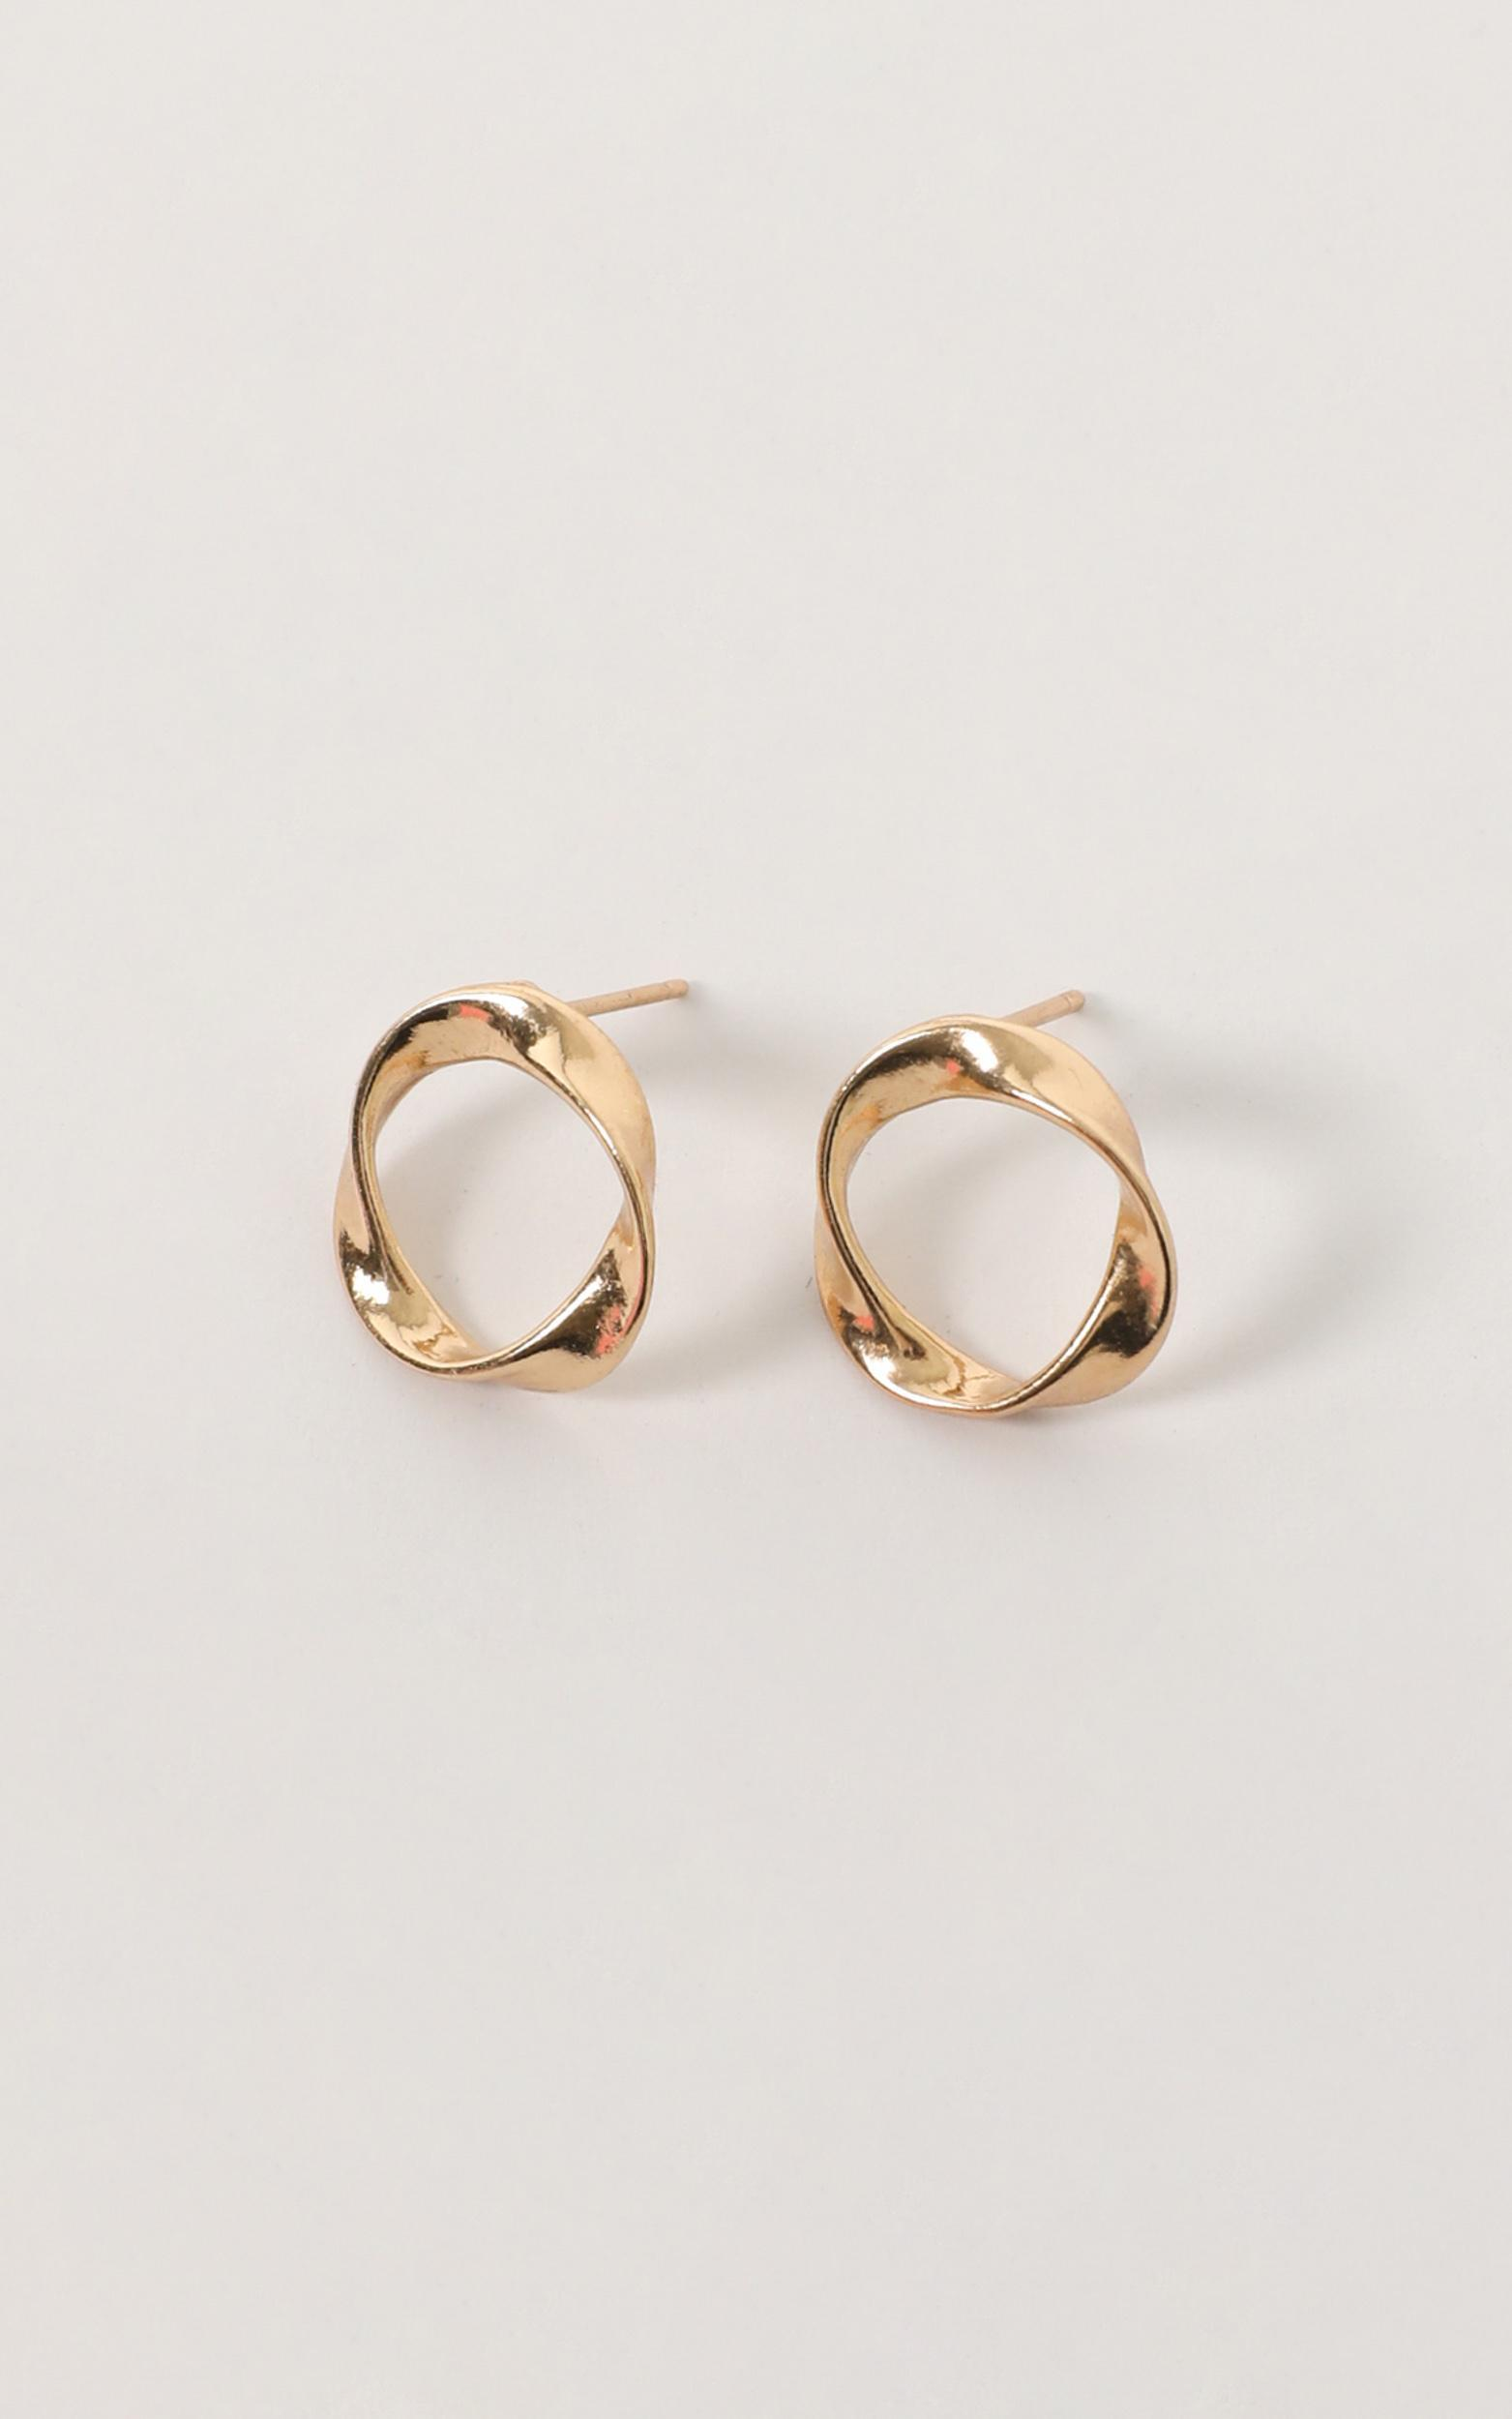 So Am I Earrings In Gold, , hi-res image number null